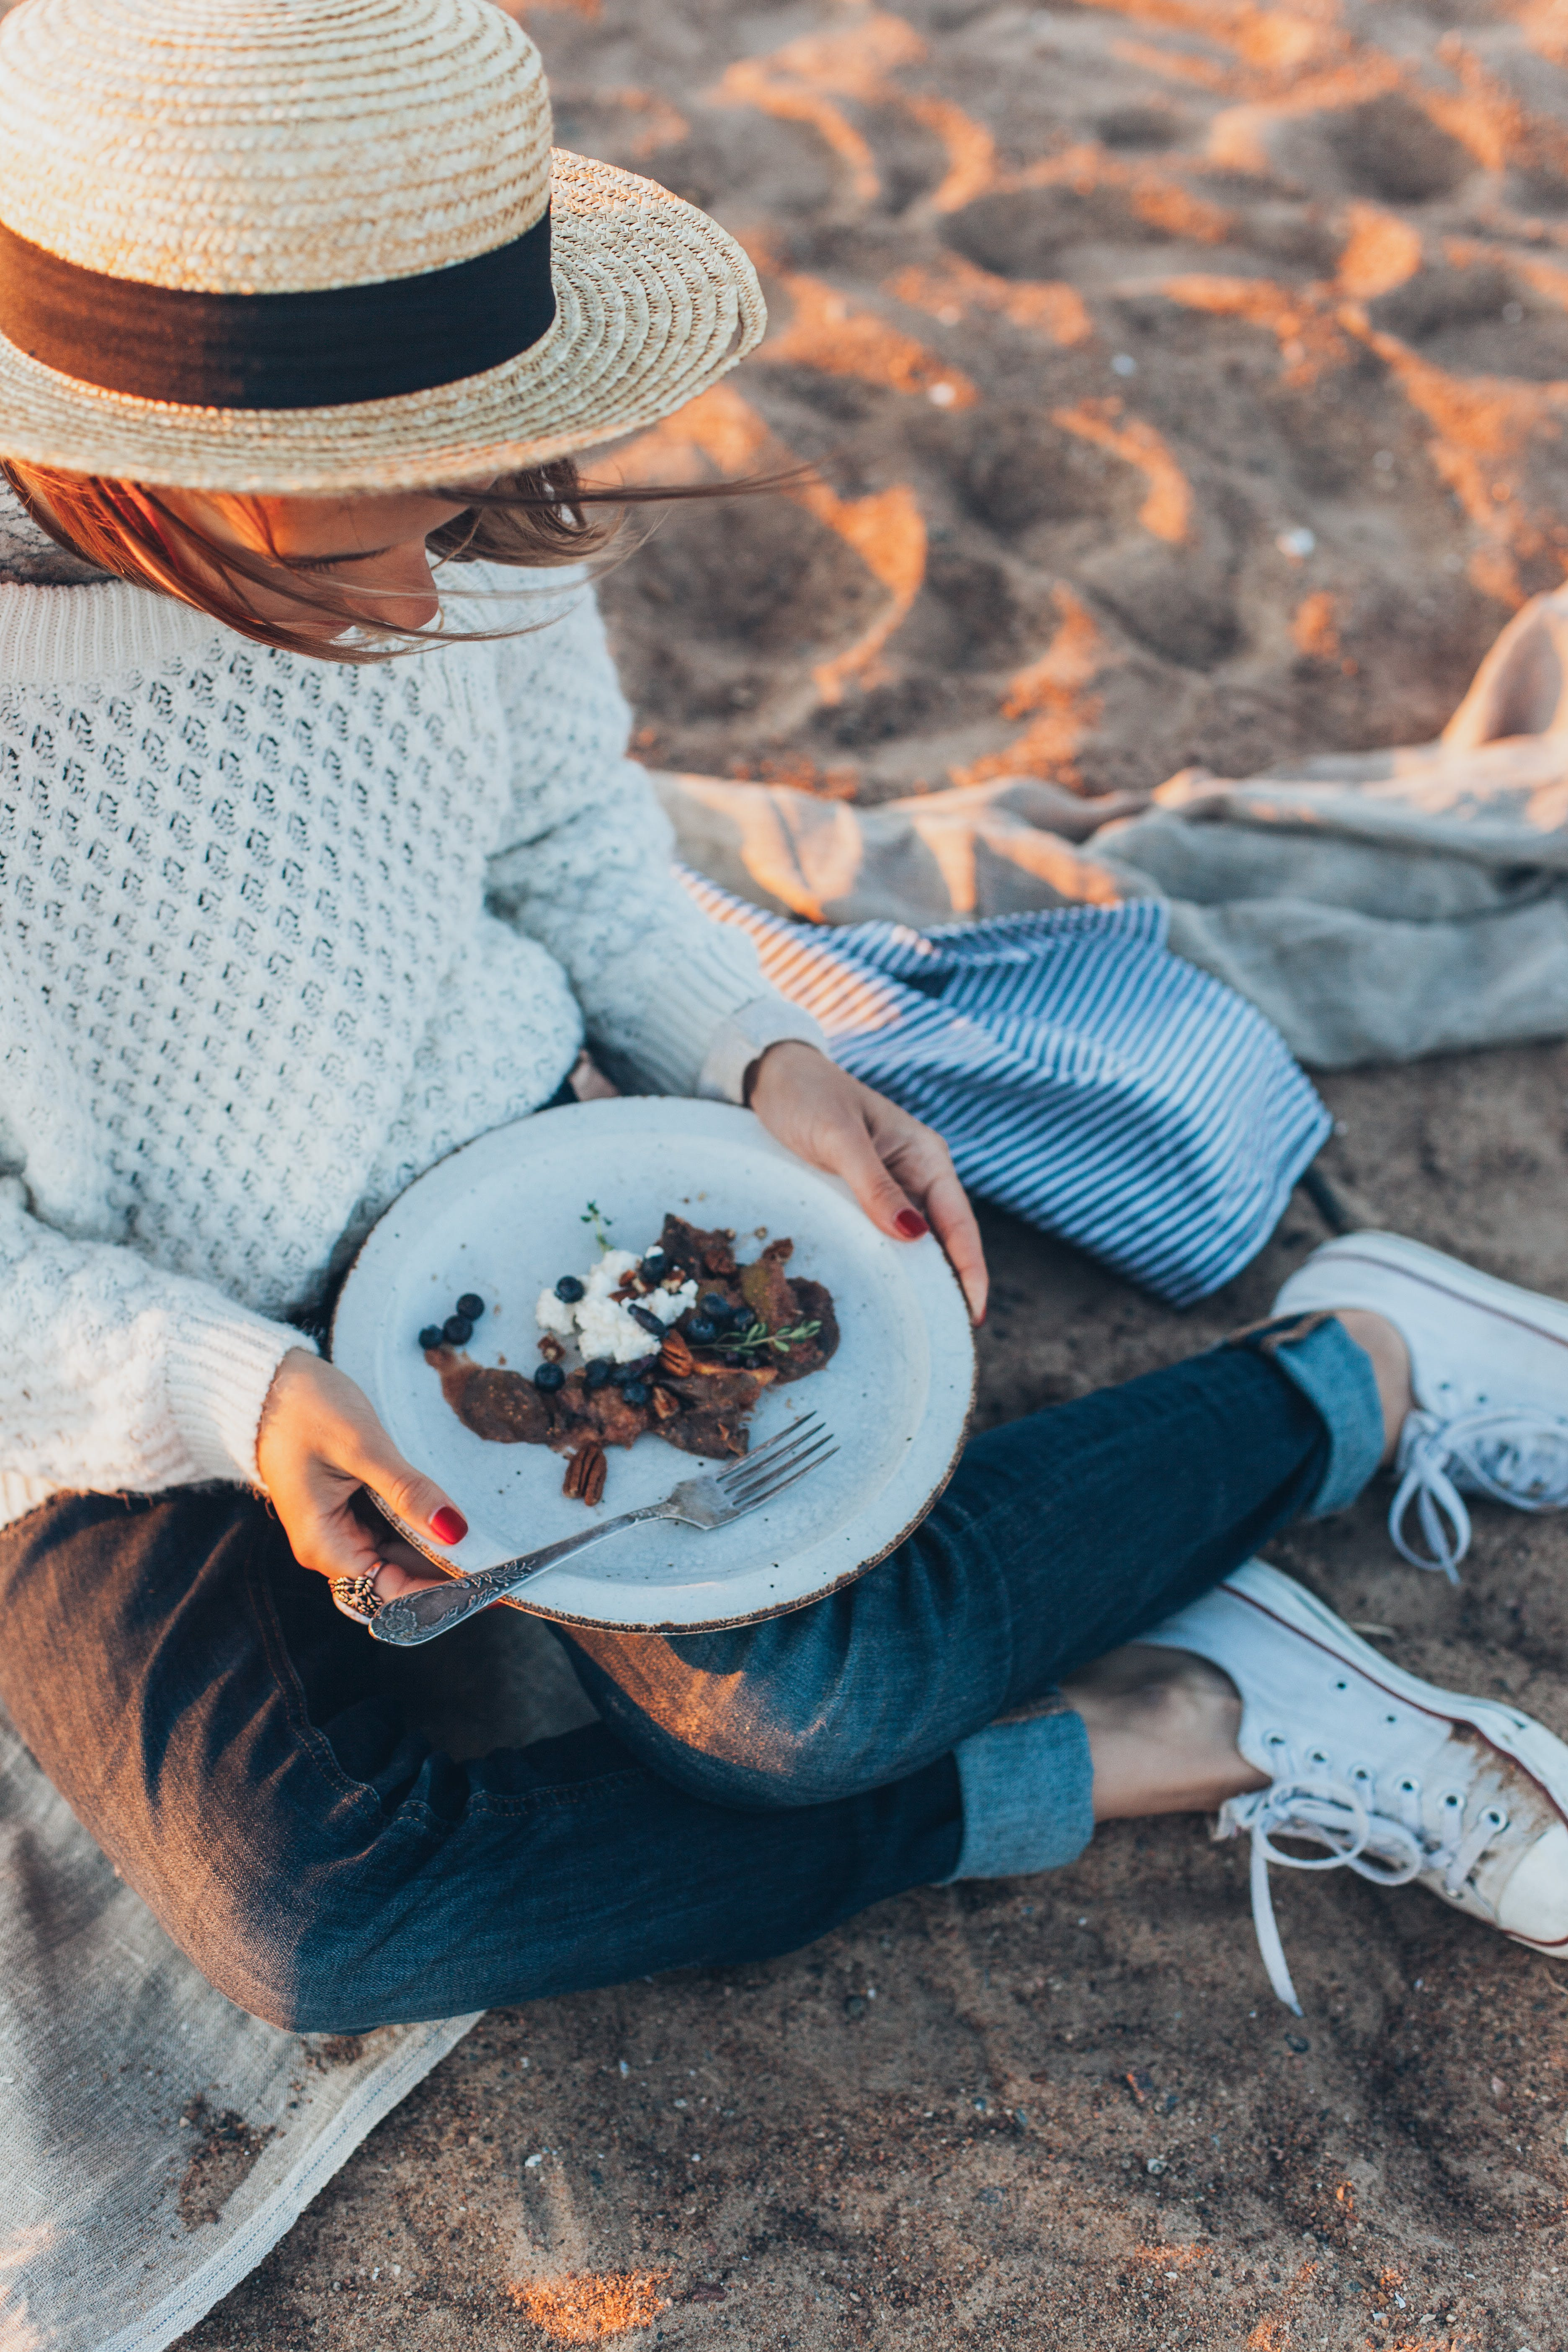 Woman Holding Plate While Sitting on Sand